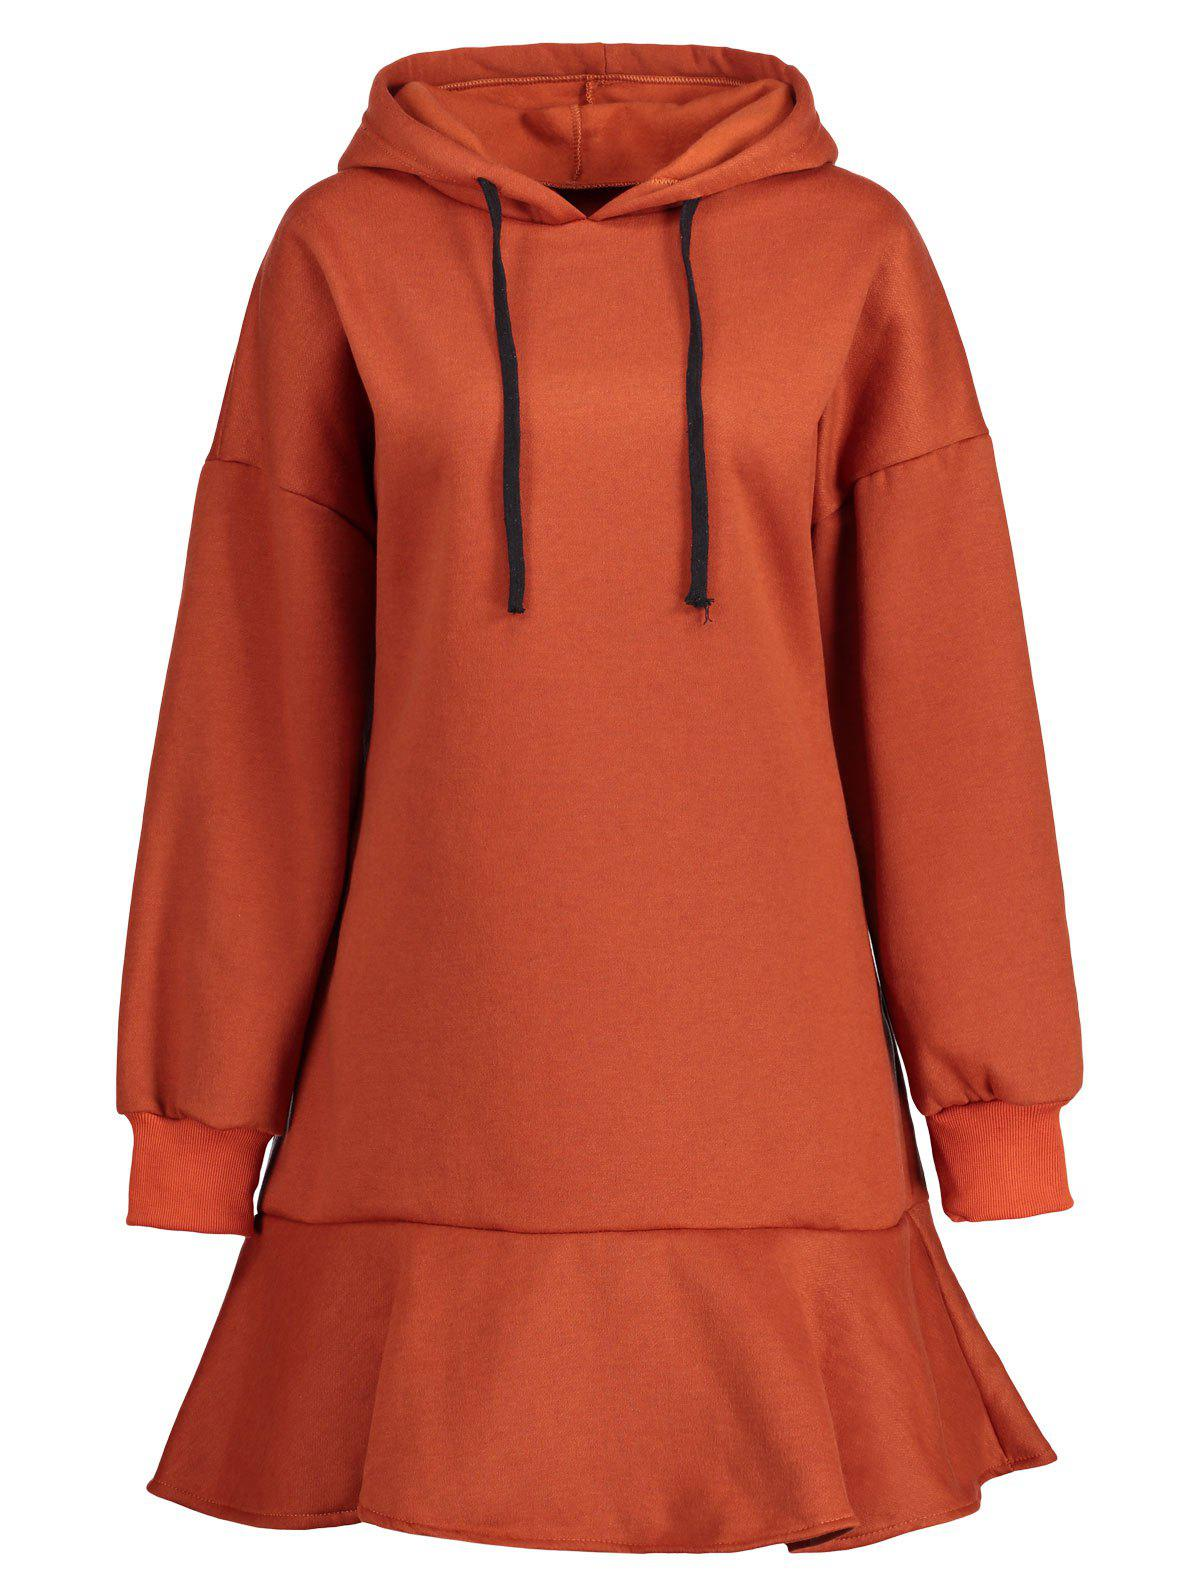 Plus Size Fleece Lined Drop Waist Hooded Dress - ORANGE RED 5XL